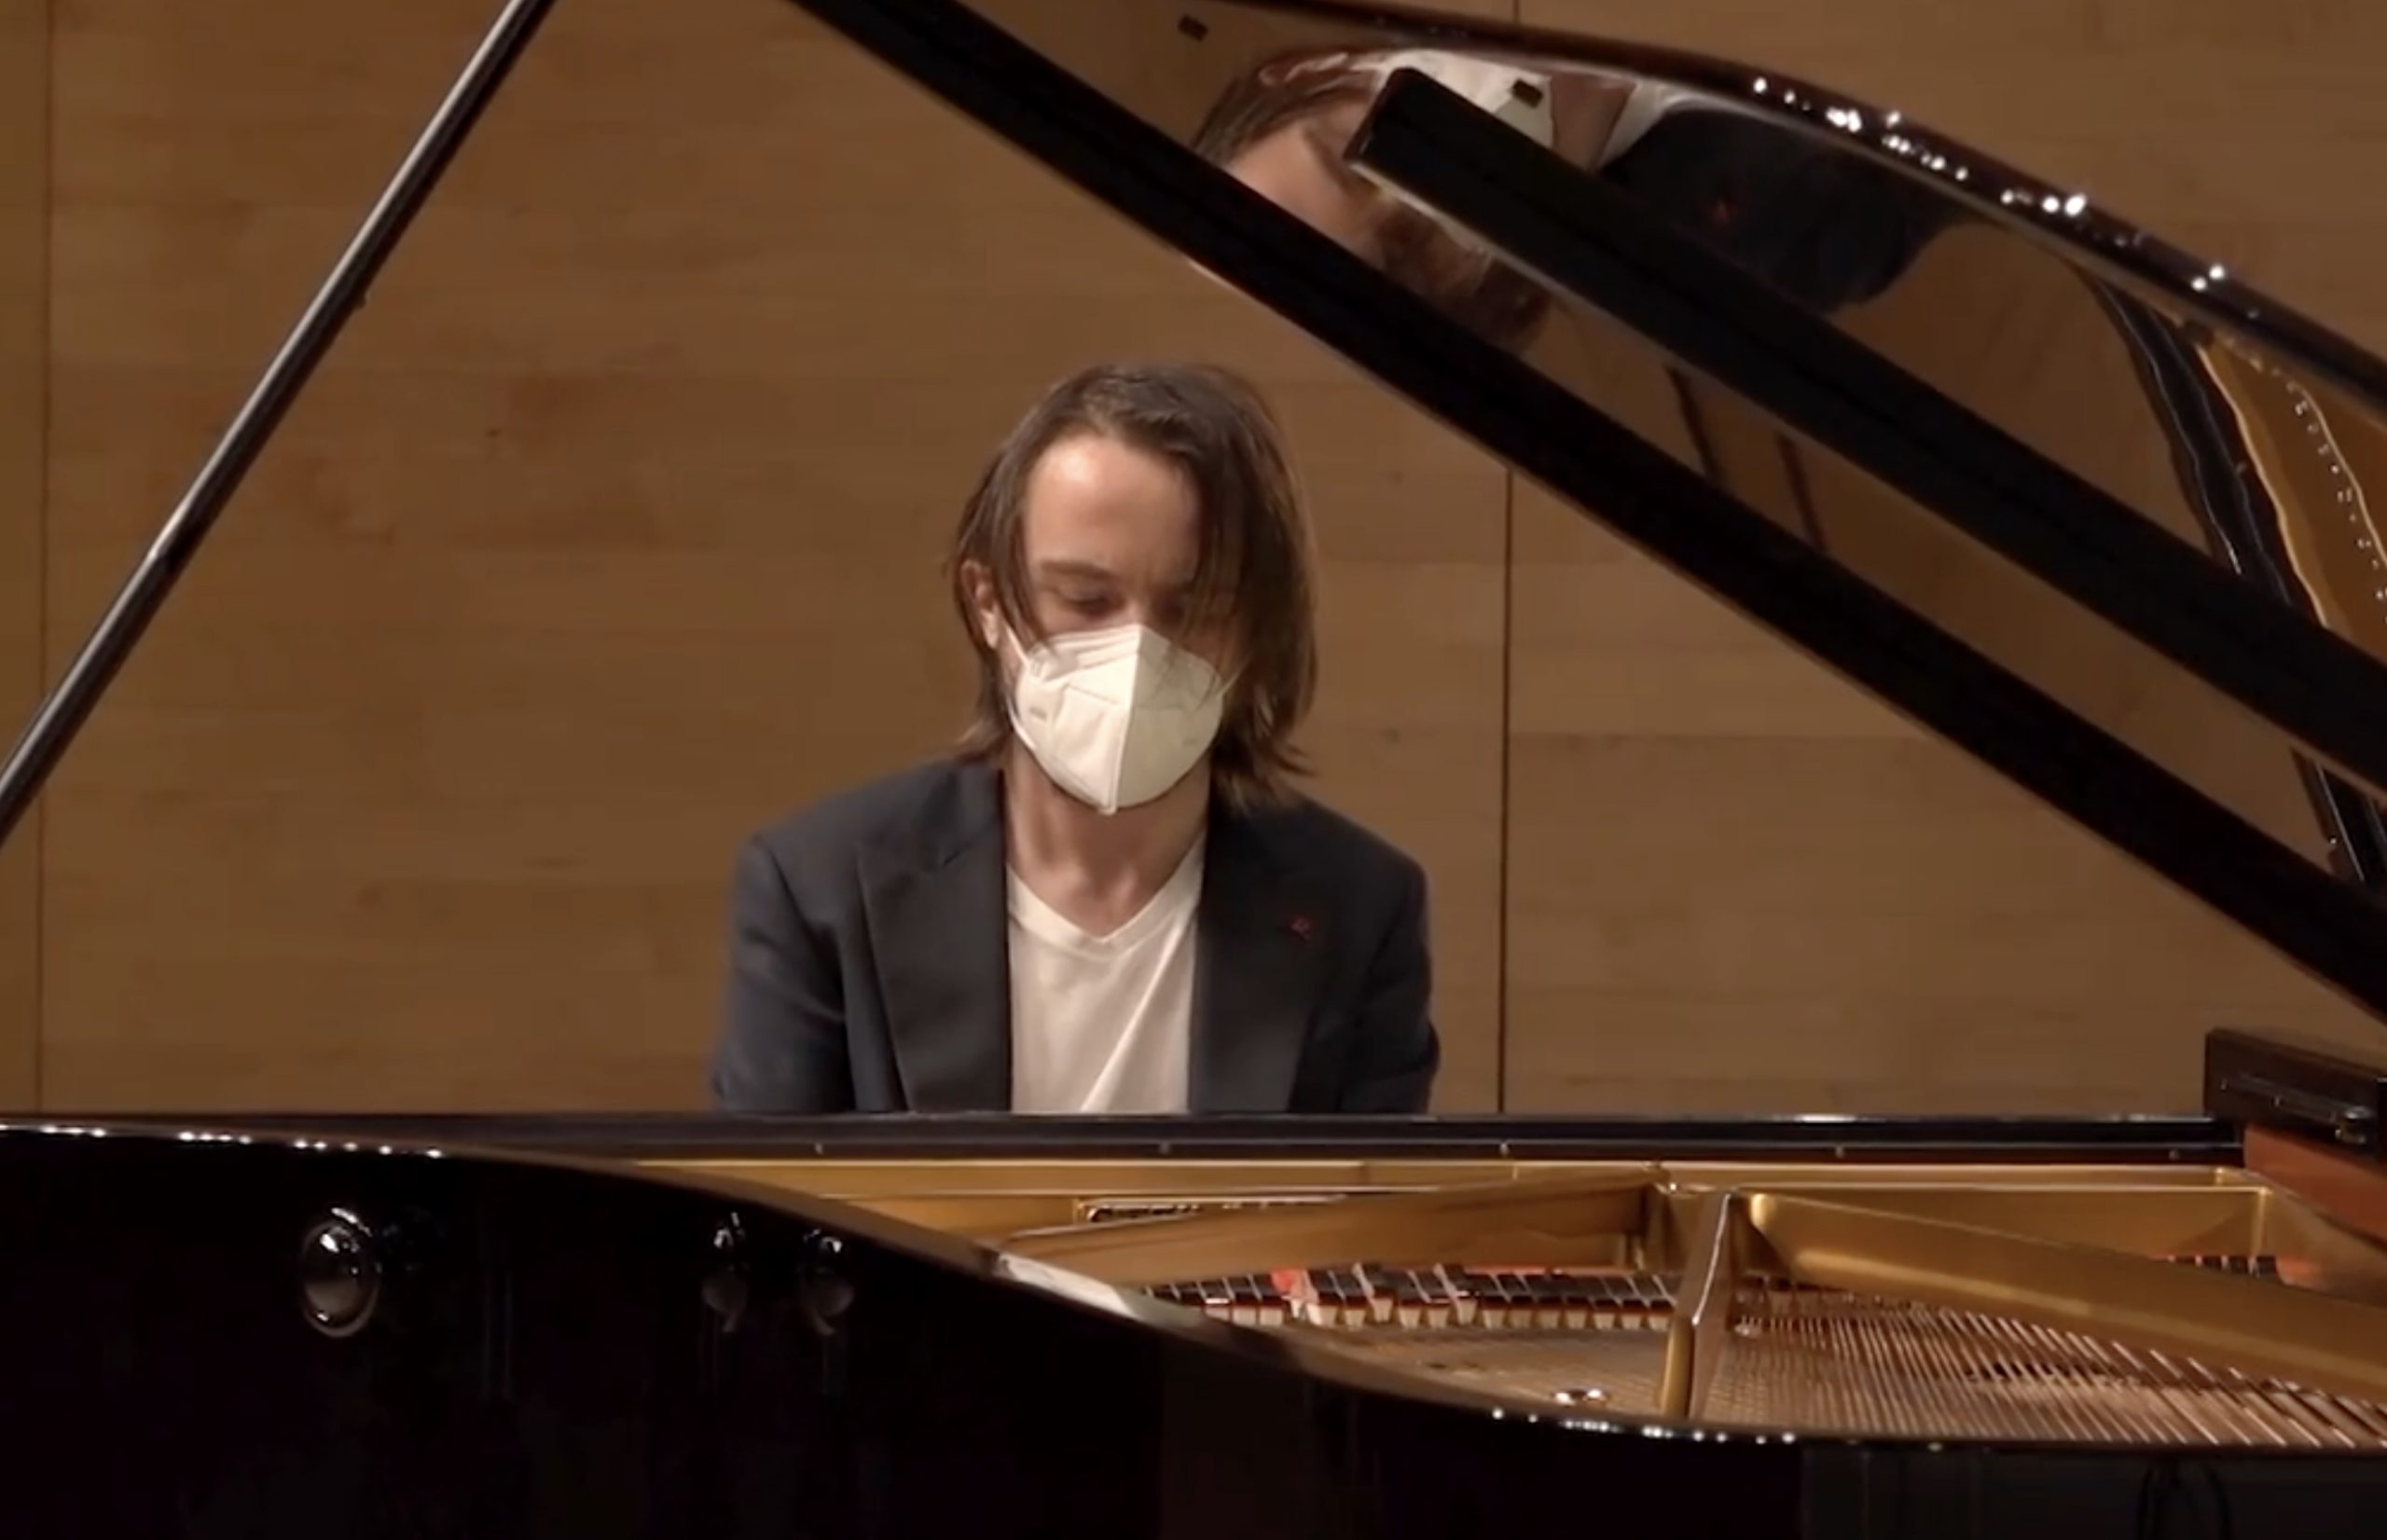 Tanglewood Stream Fishing Part 3-Daniil Trifonov Plays Bach's Art of Fugue